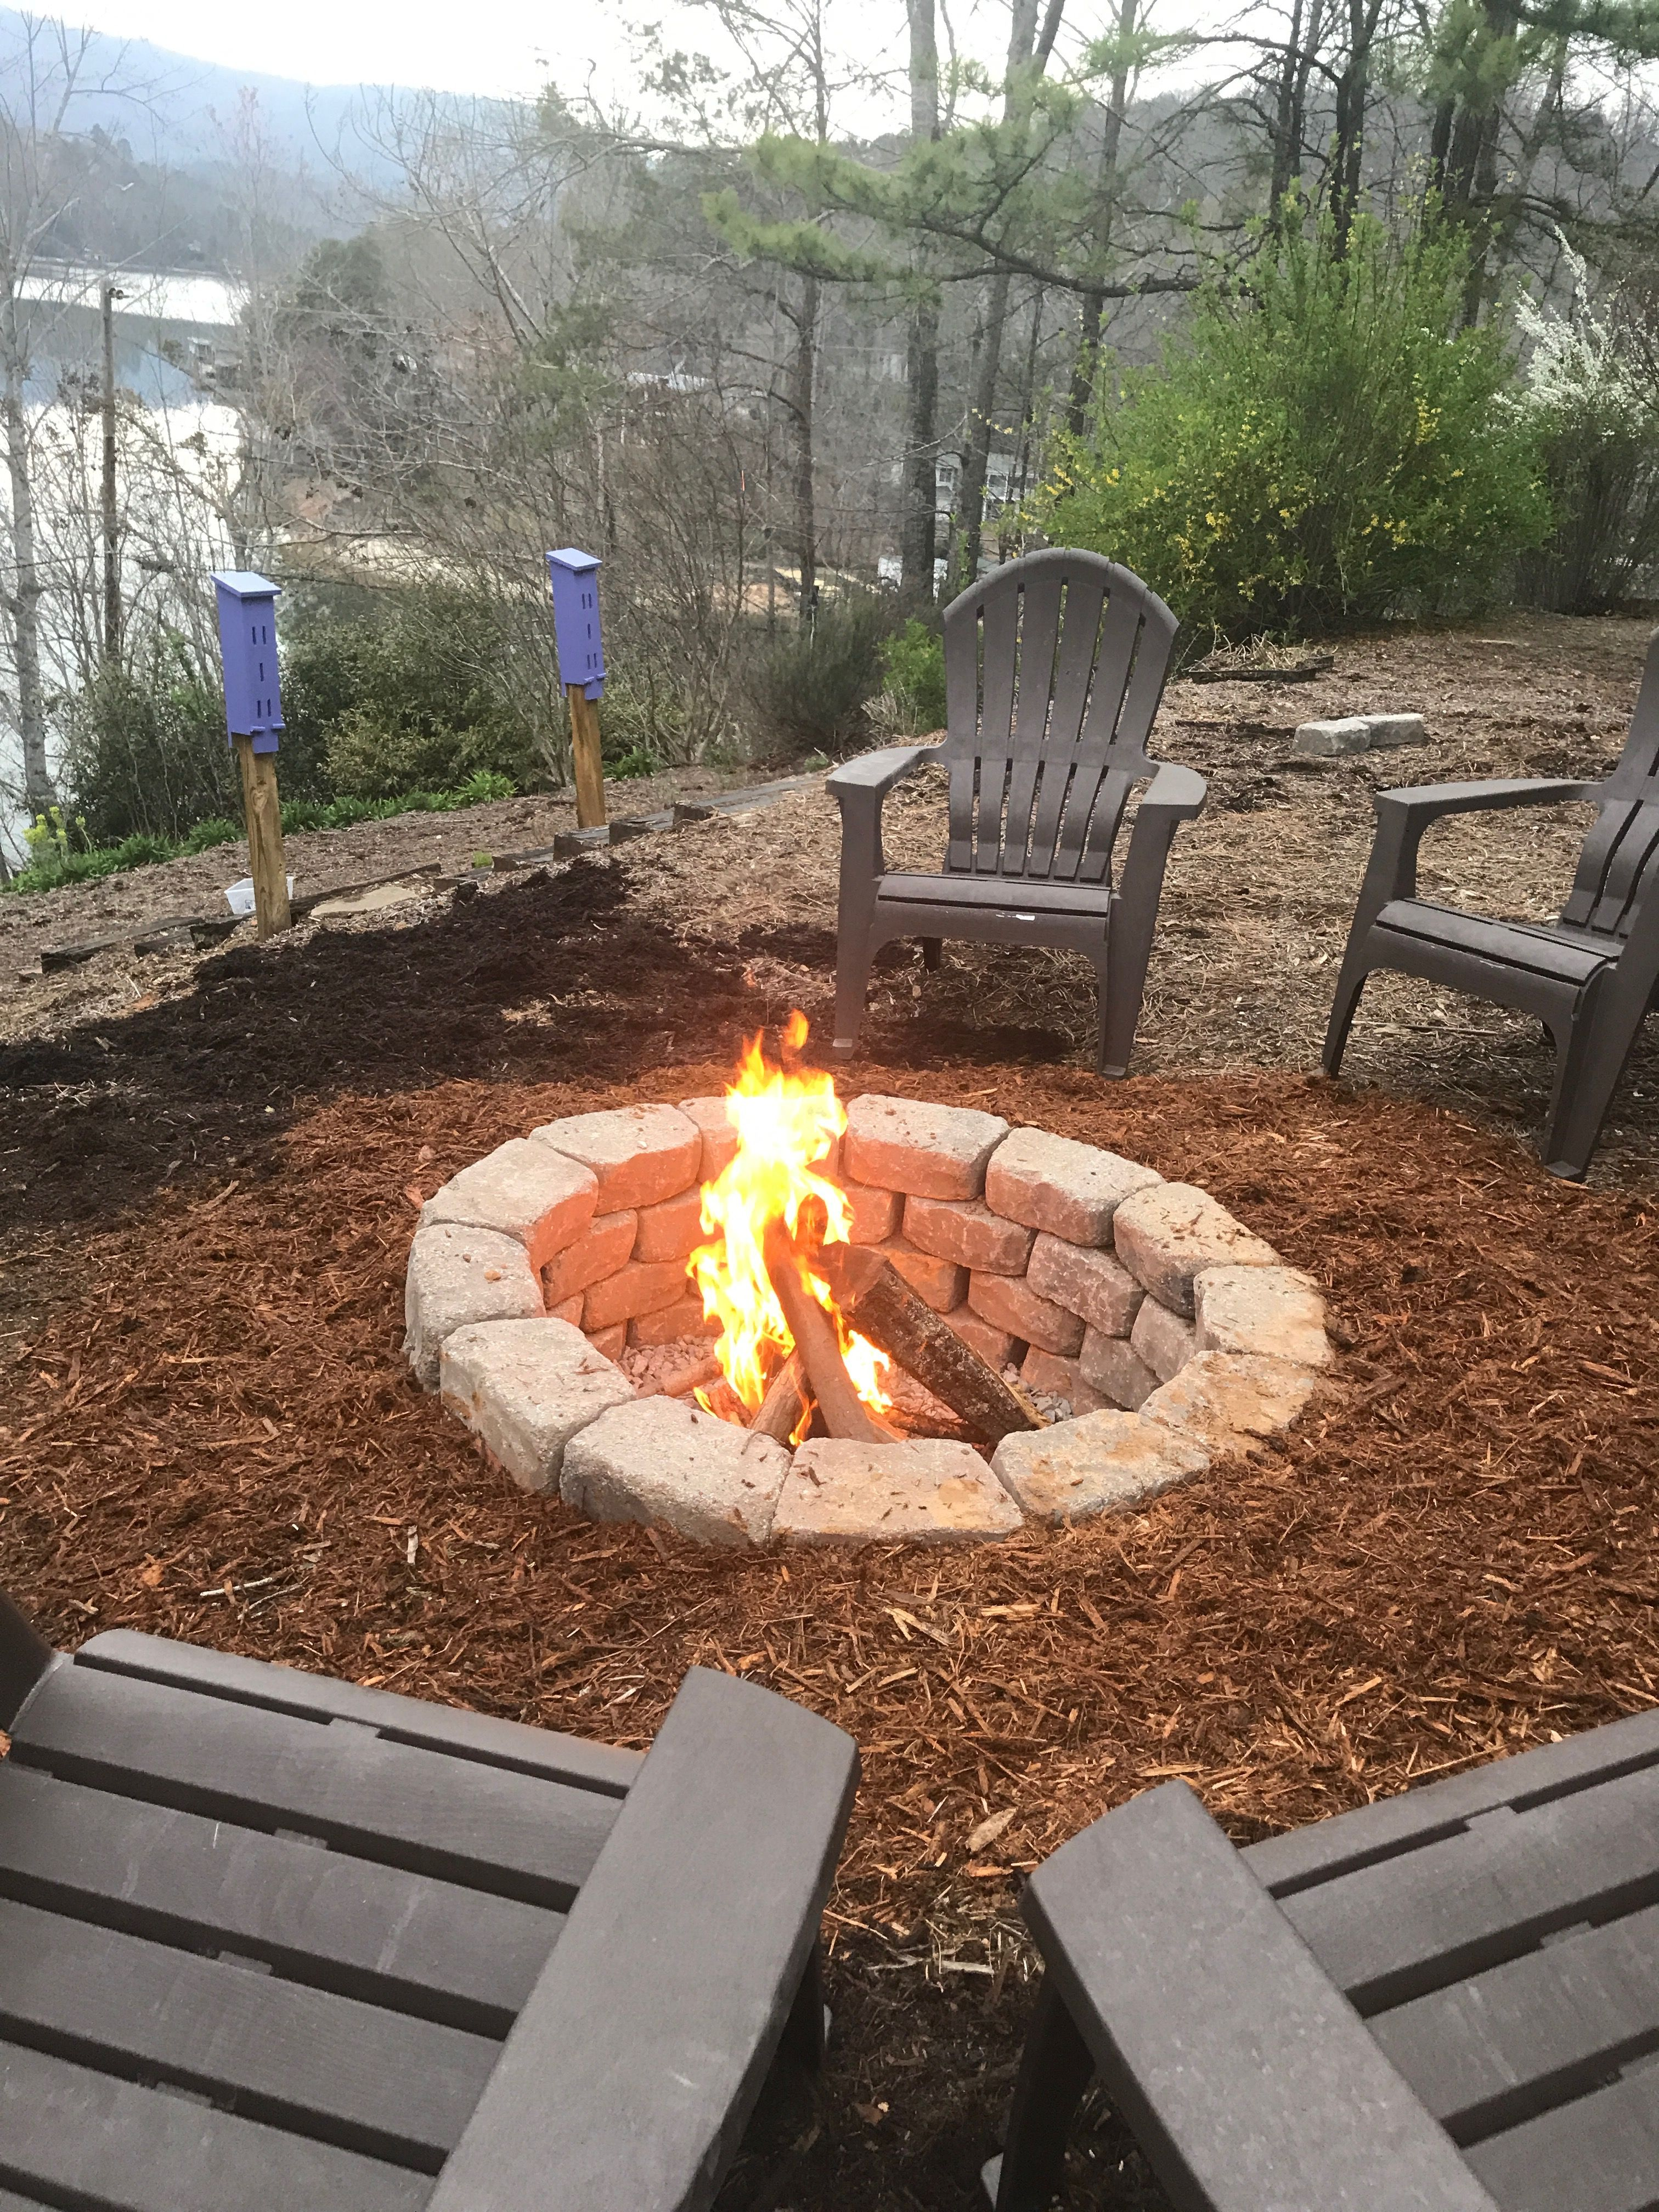 In Ground Fire Pit On Slope Outdoor Fire Pit Beach Fire Pit In